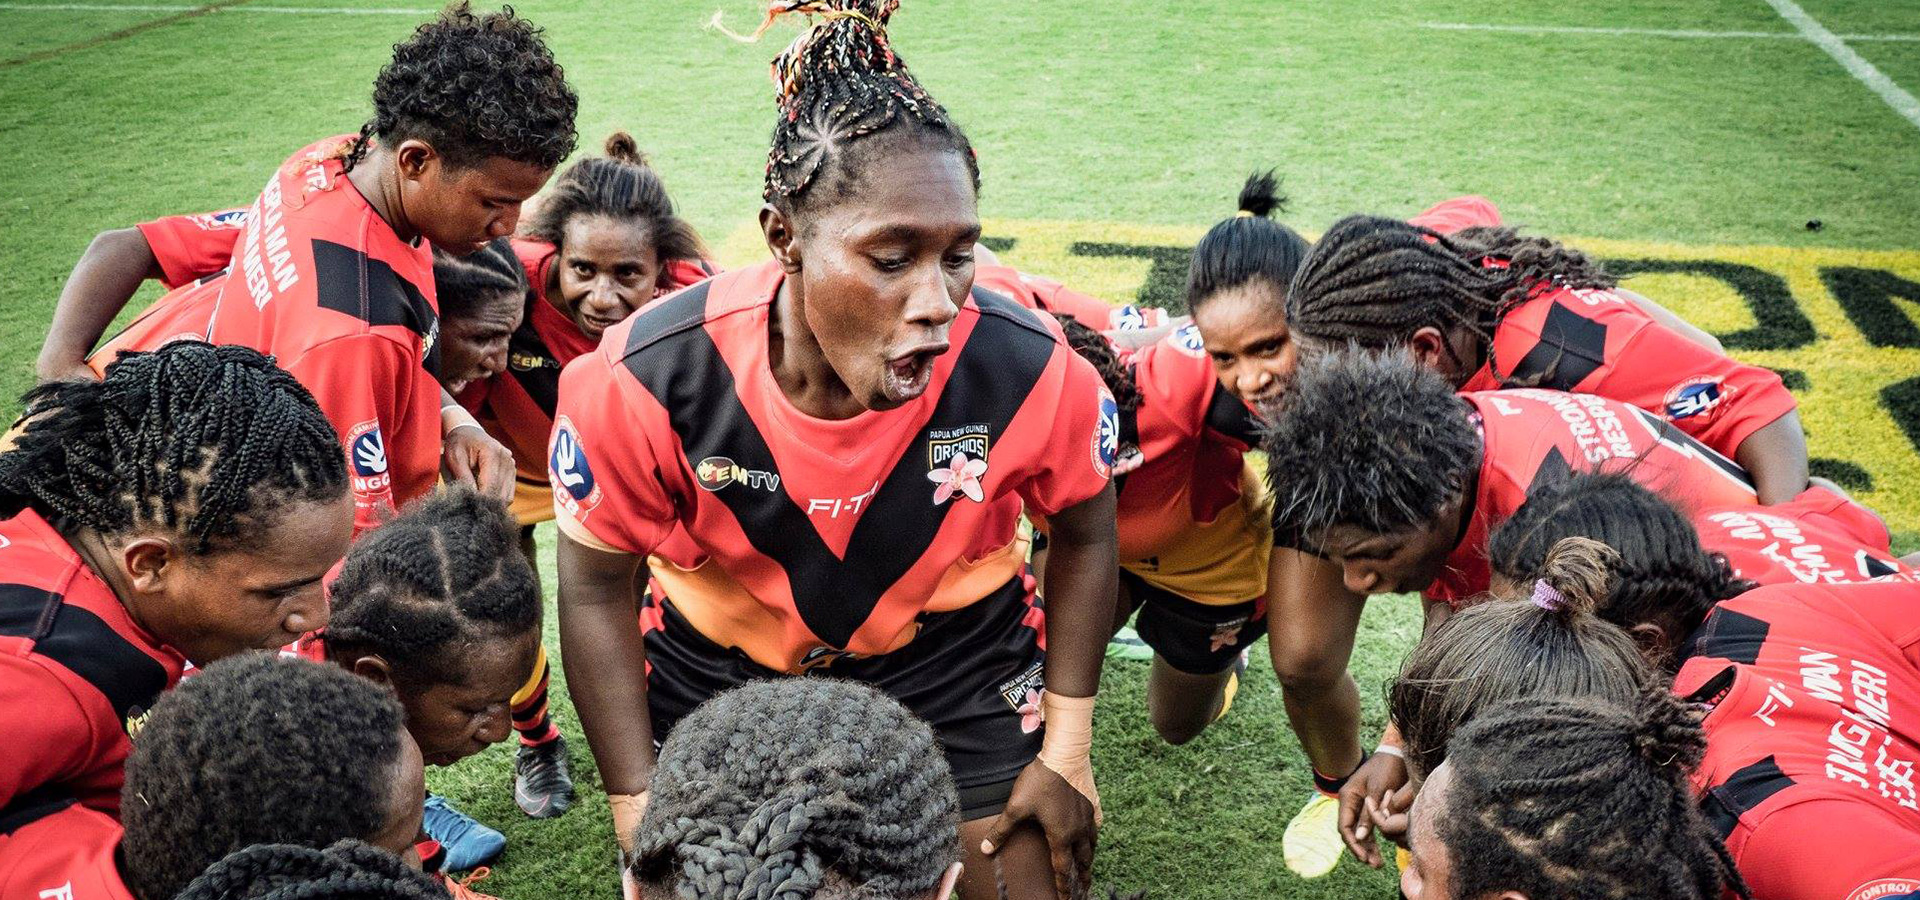 Womans Rugby League On The Rise